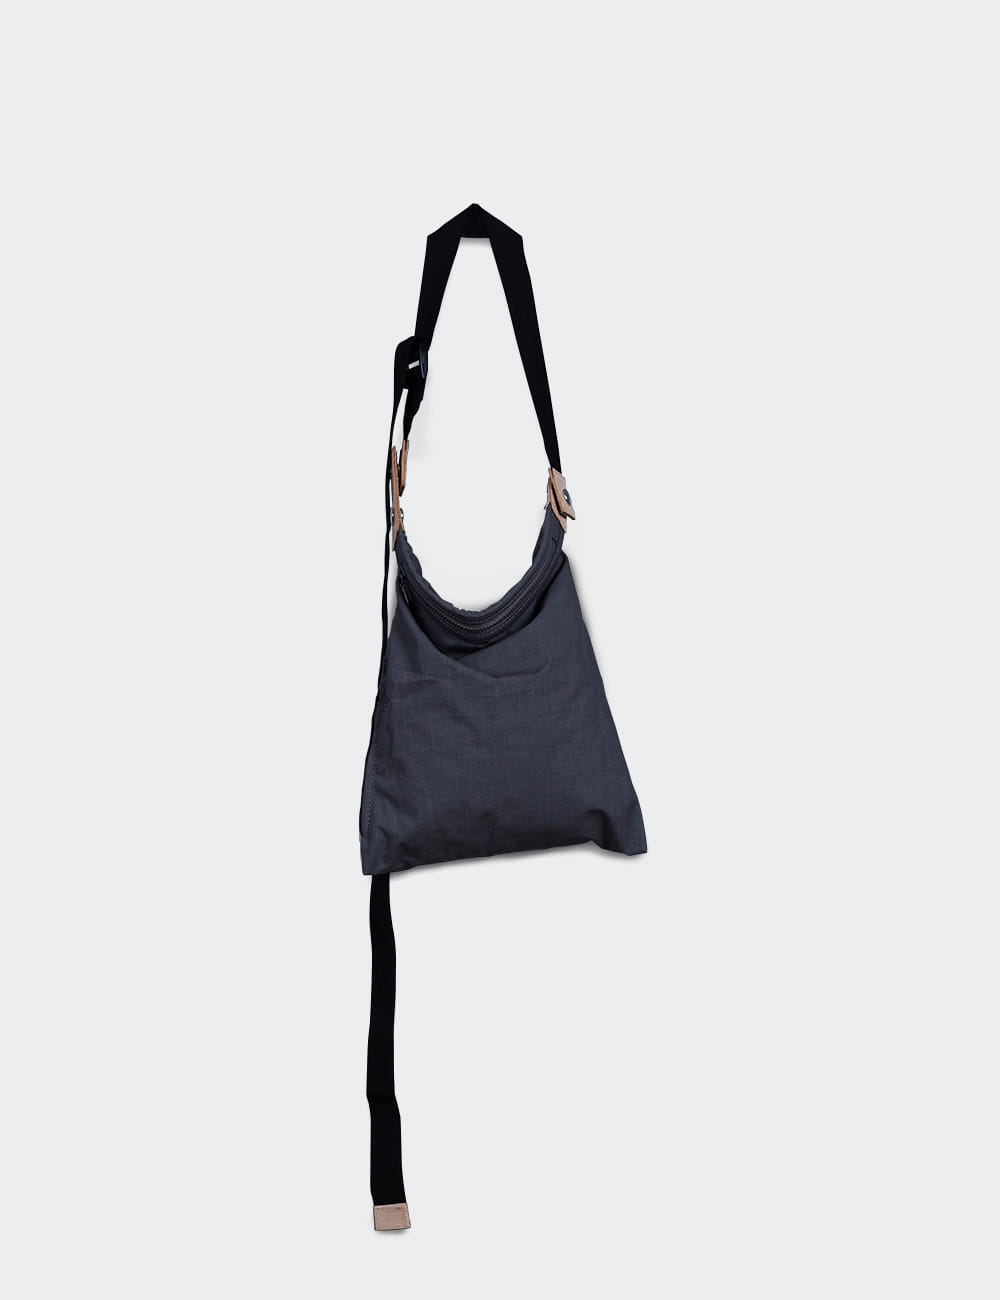 WRAP BAG - XS (GRAY)